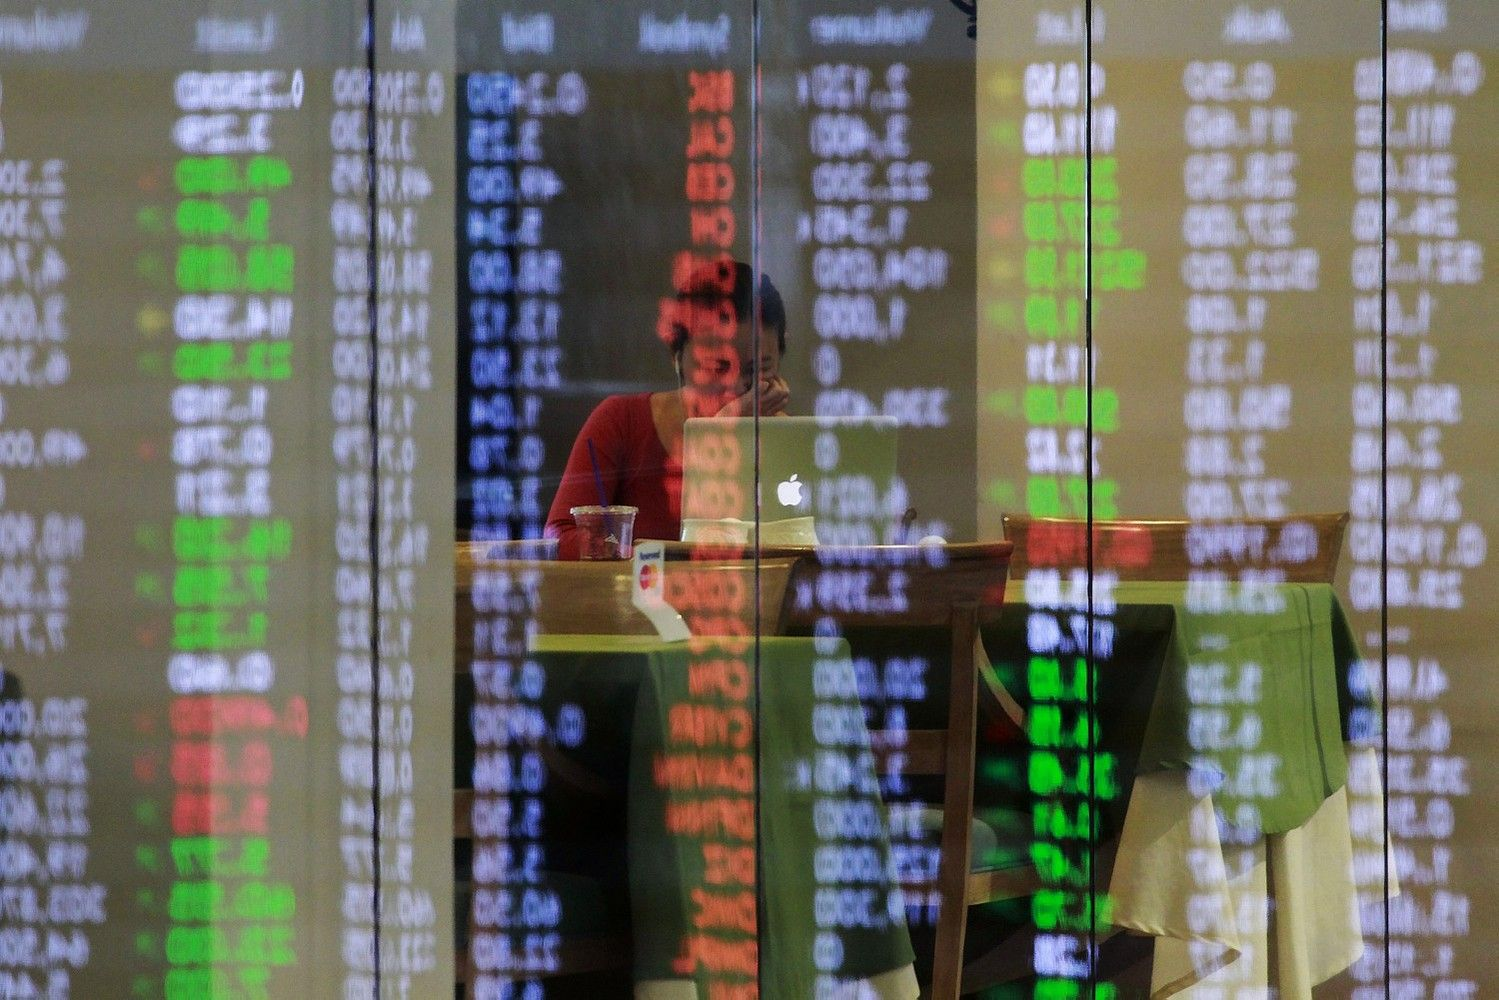 Stocks Fall on Korea Tensions as Haven Assets Rise: Markets Wrap